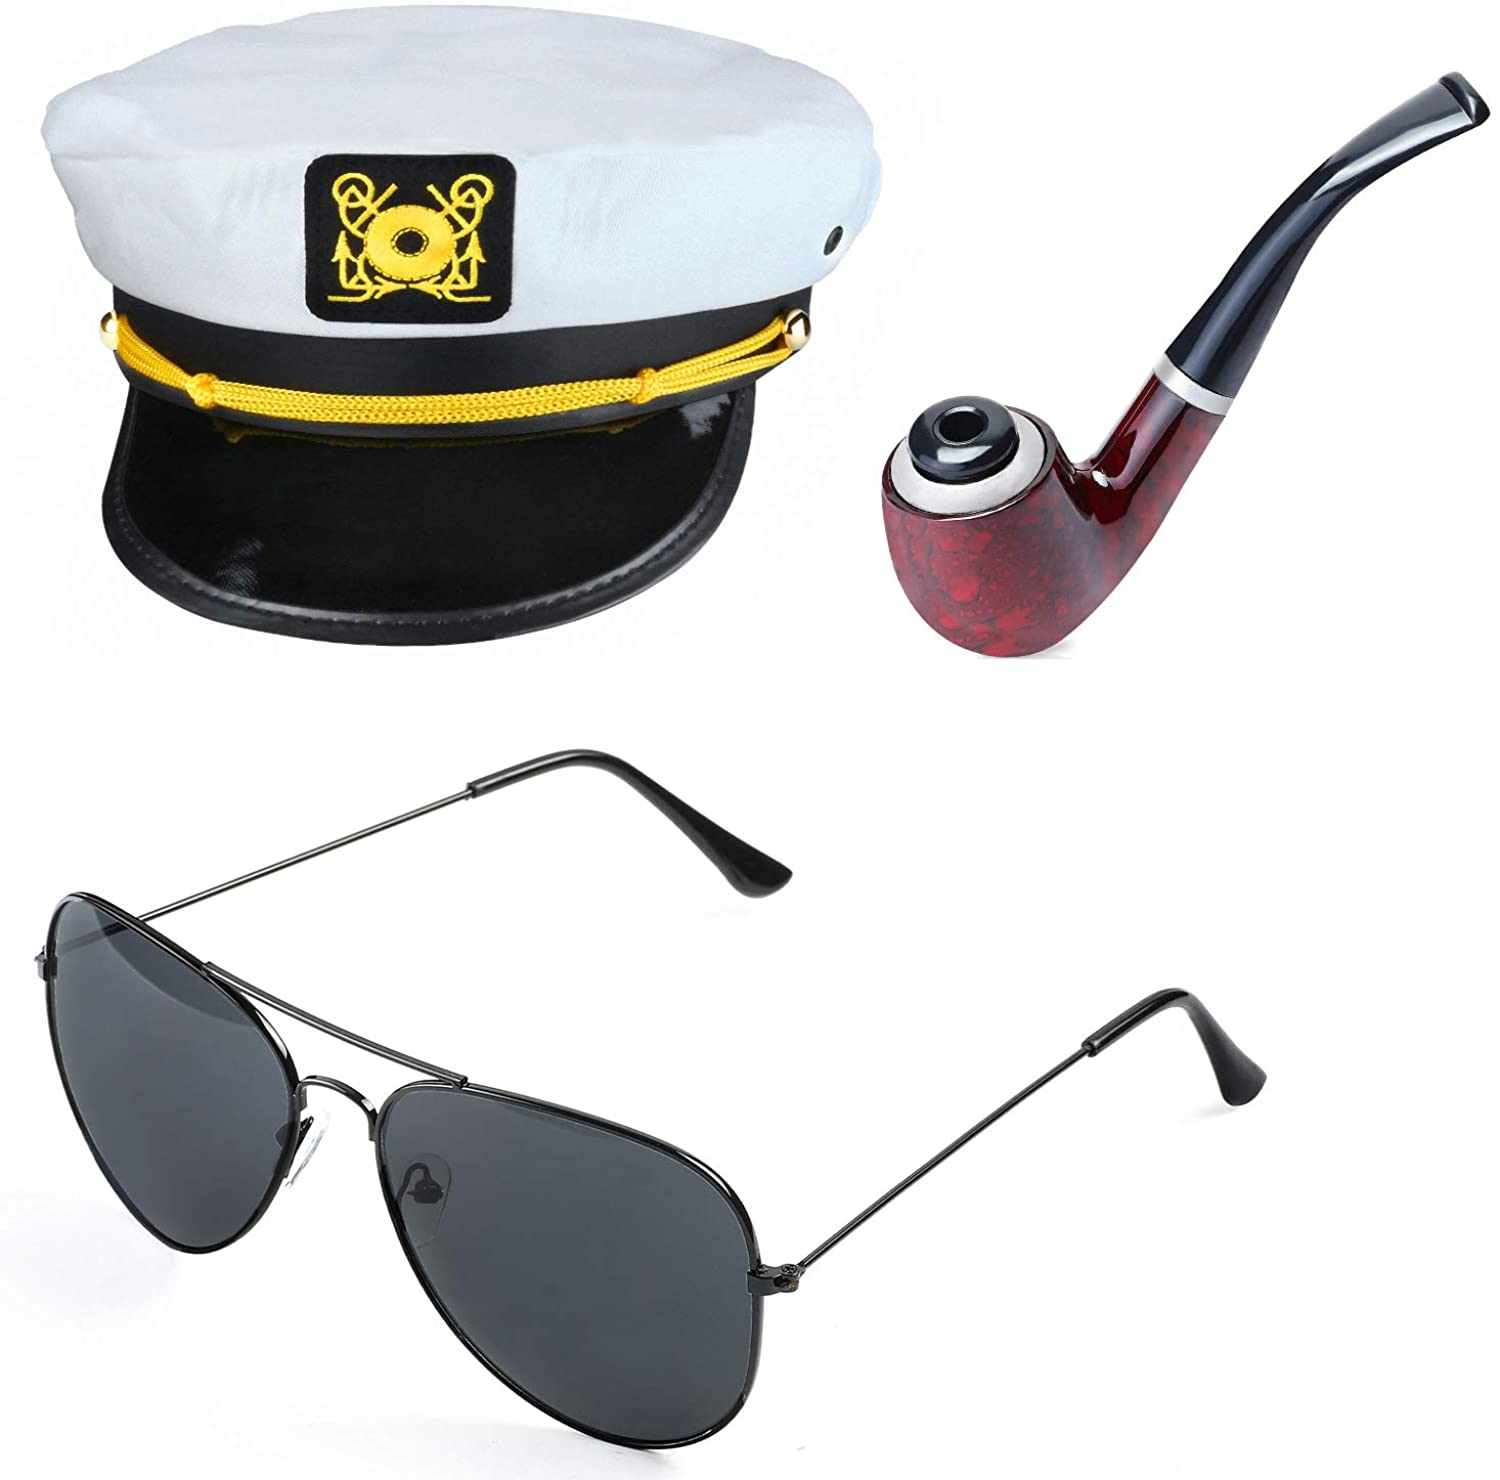 Beelittle Yacht Captain Hat Costume Accessories Set Sailor Hat with Corn Cob Pipe & Aviator Sunglasses